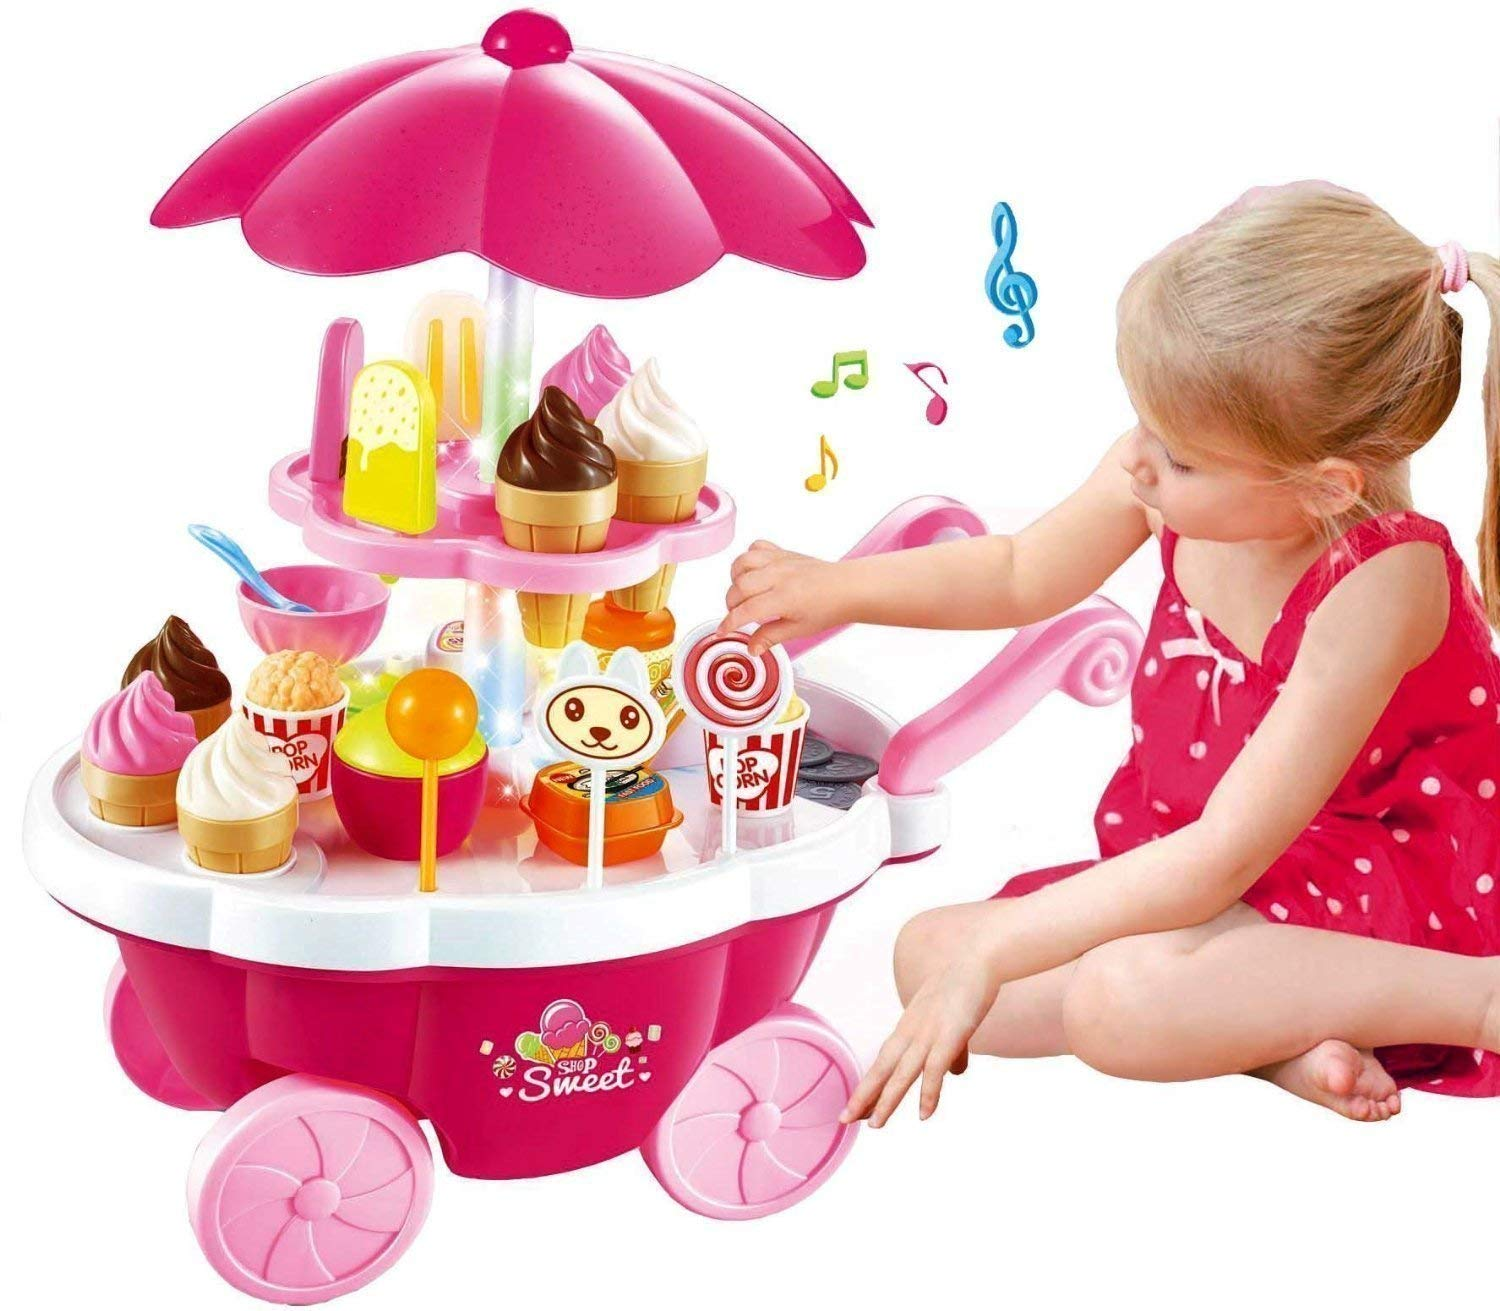 New toy chehar enterprise Ice Cream Kitchen Play Cart Kitchen Set Toy with Lights and Music, Pink